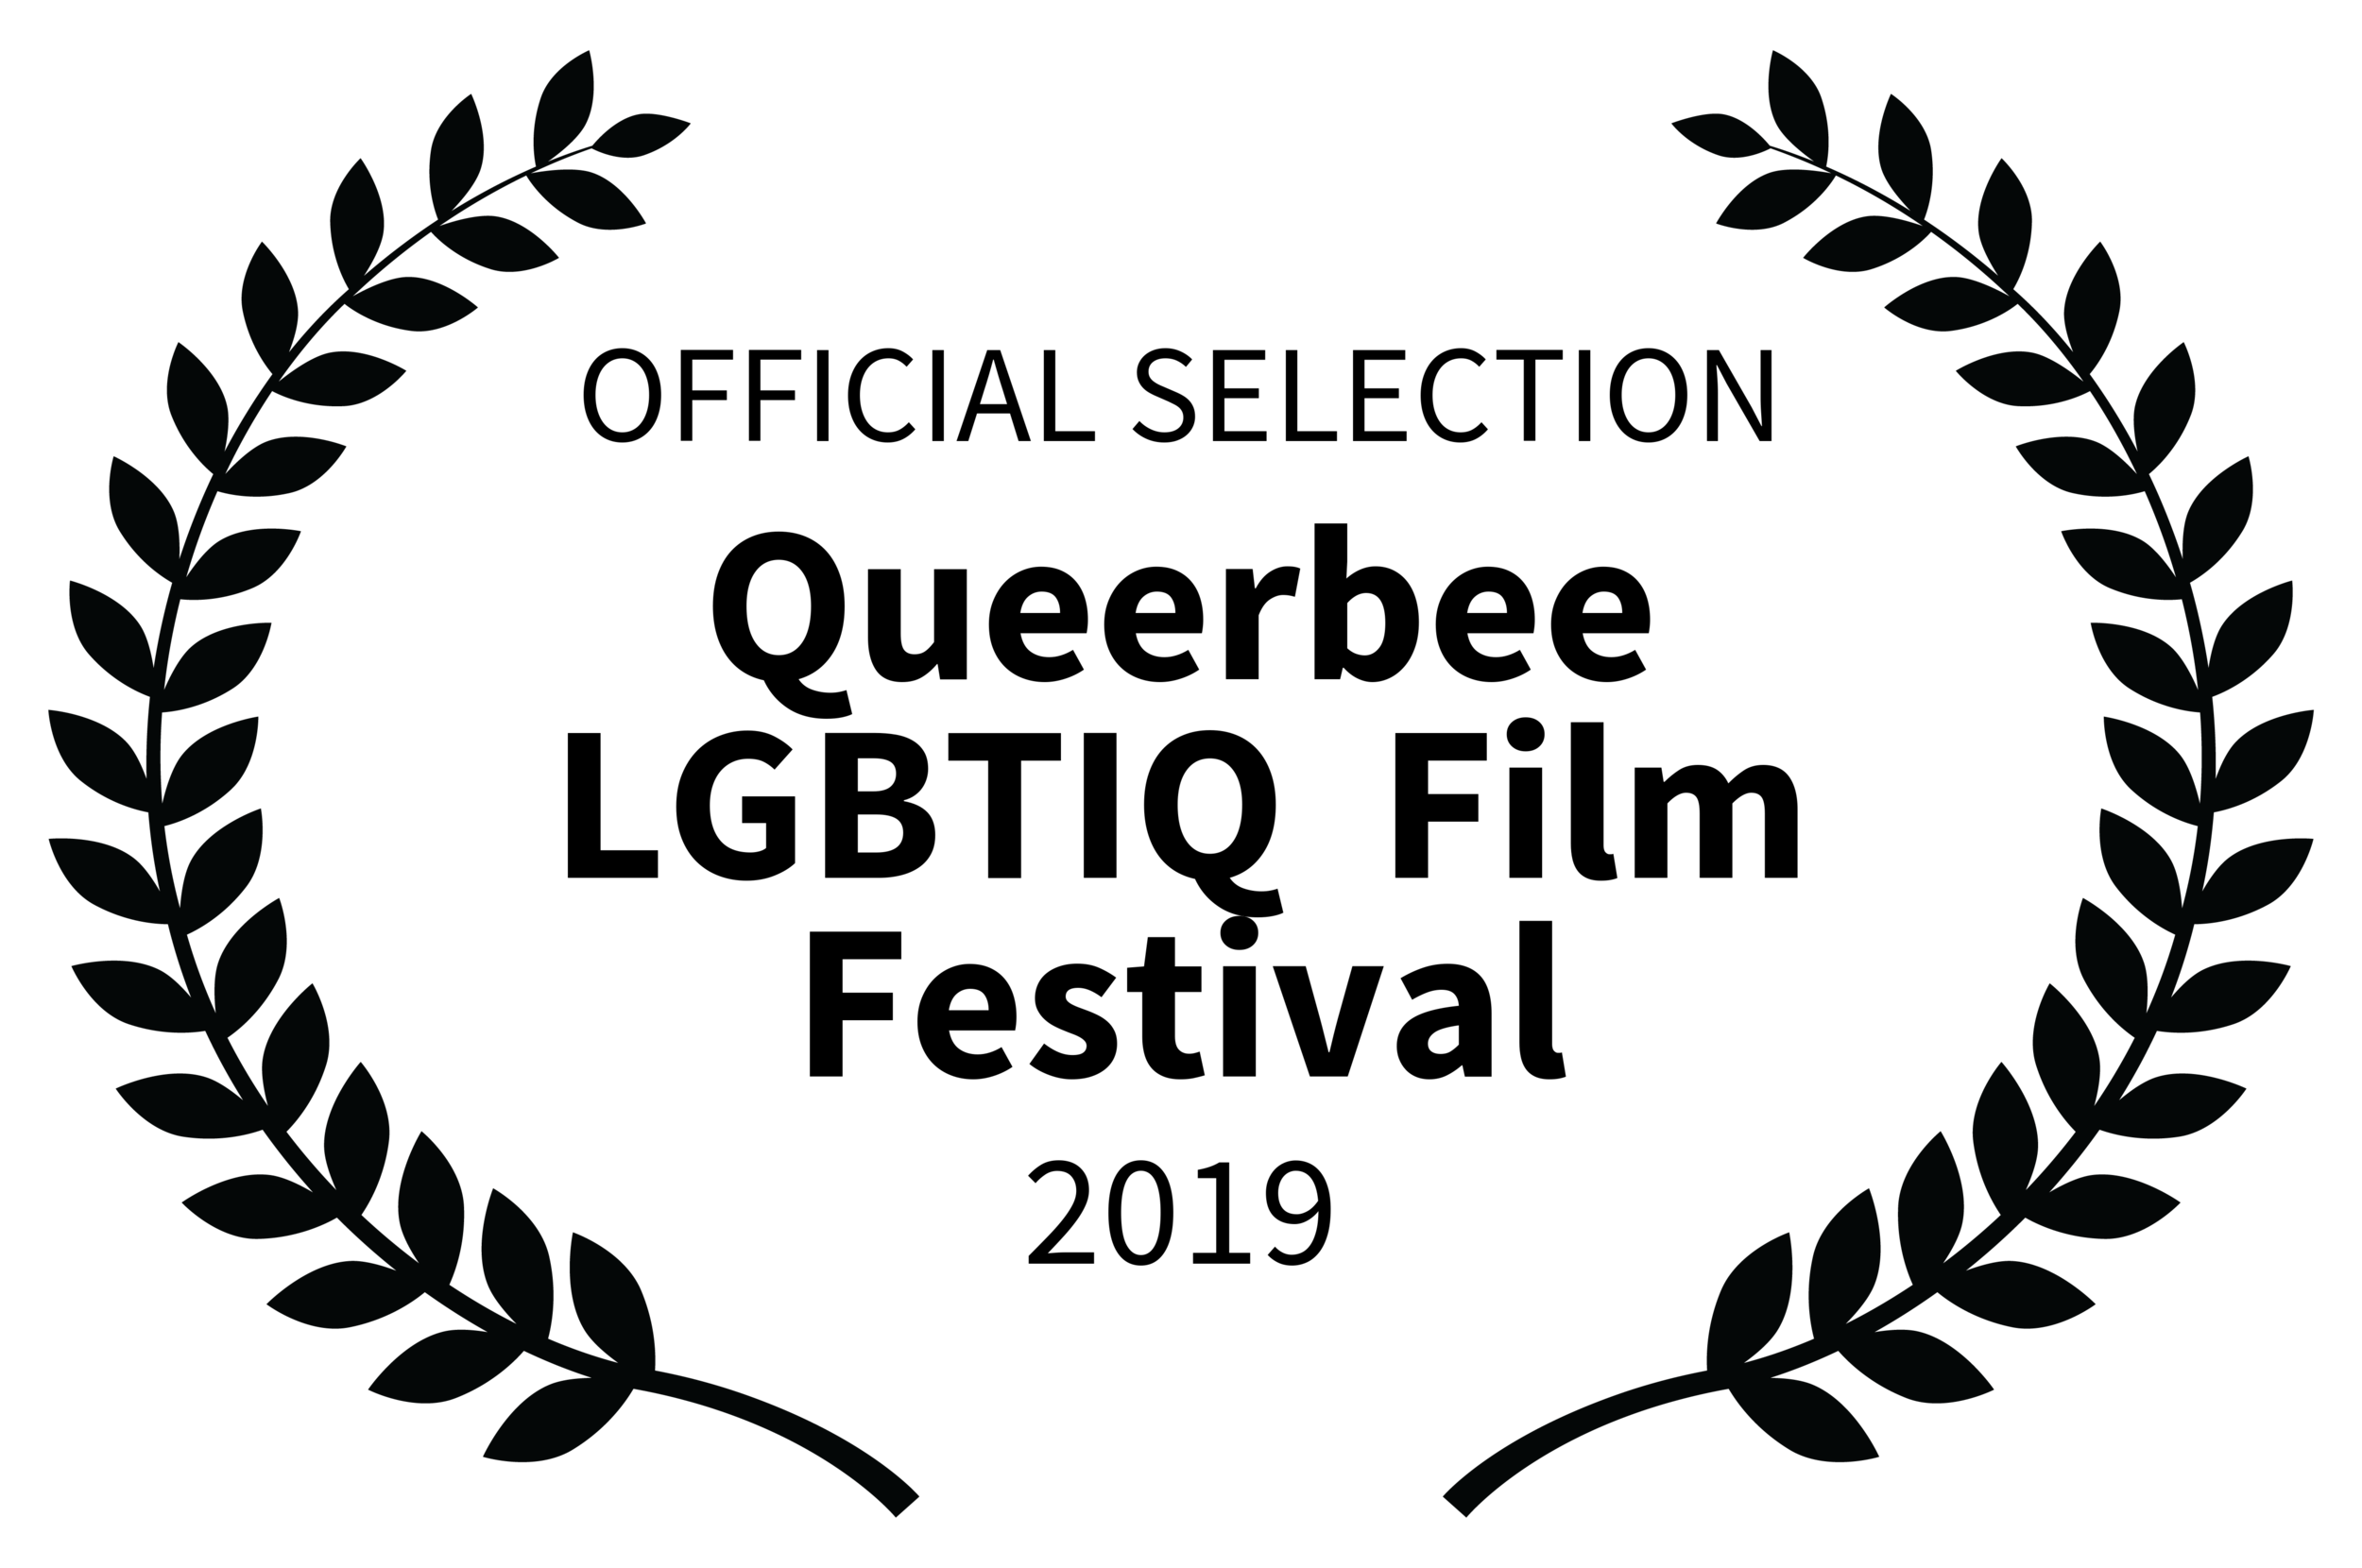 OFFICIALSELECTION - QueerbeeLGBTIQFilmFestival - 2019.png